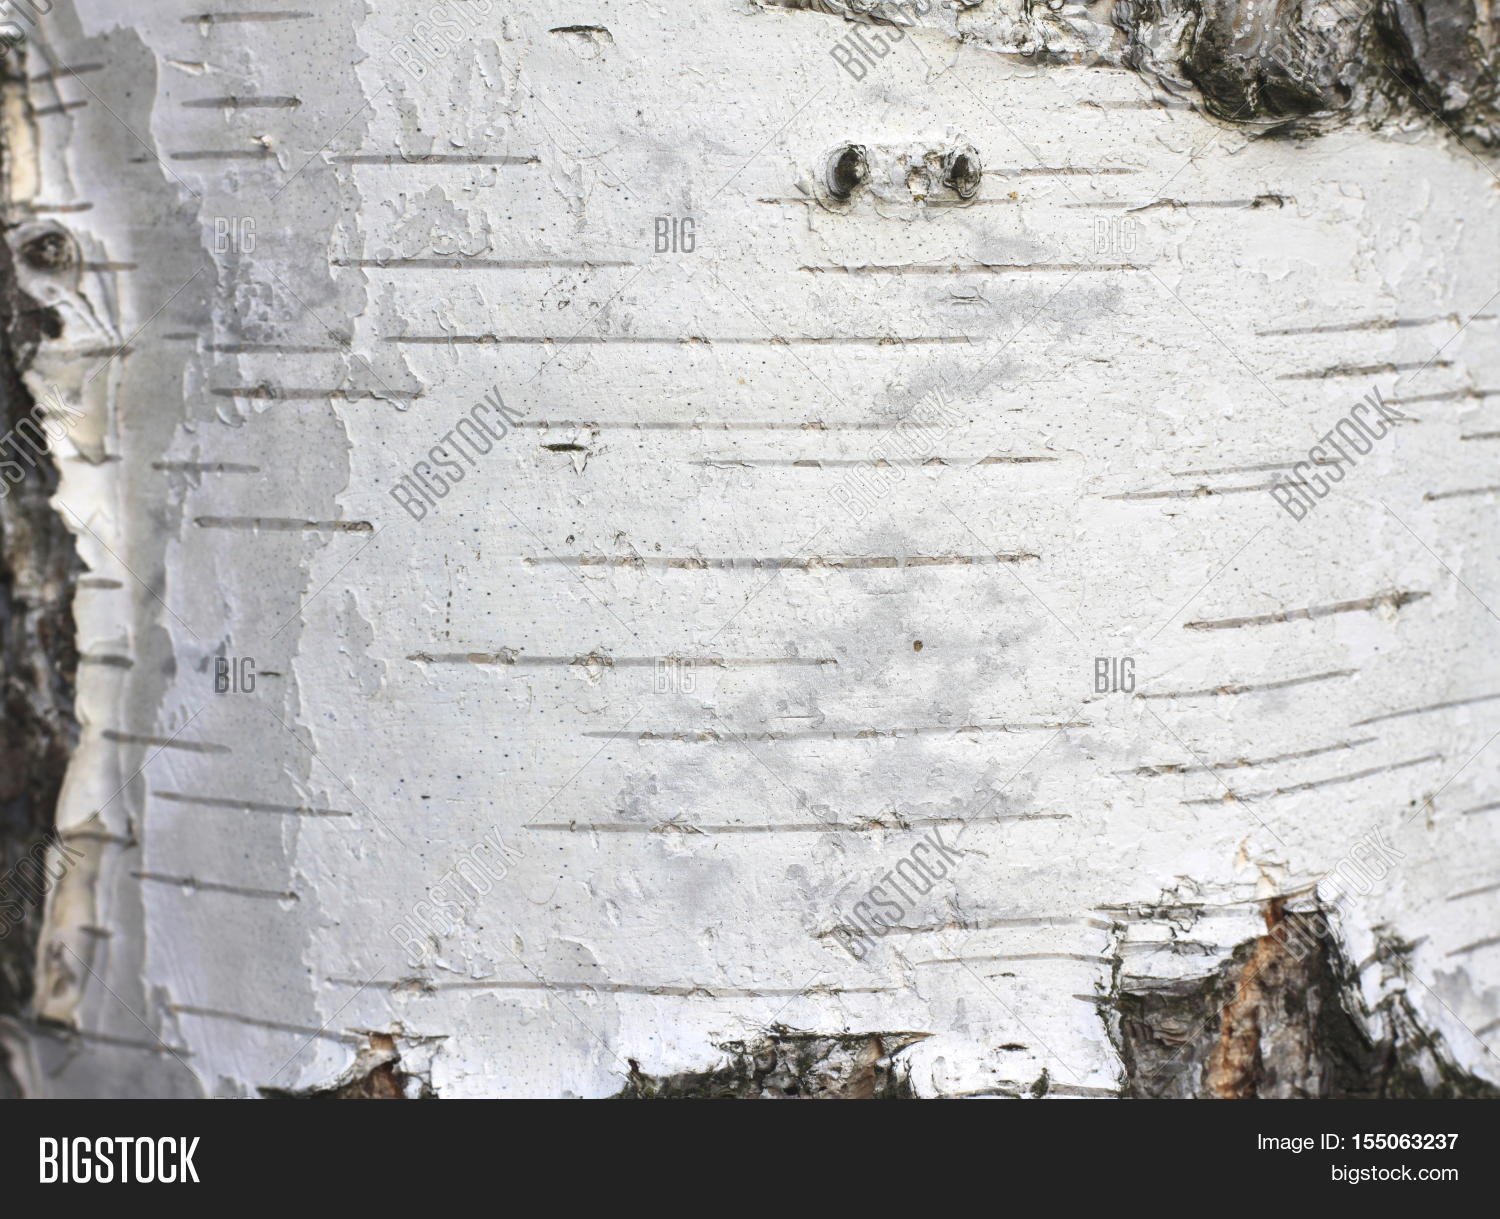 Perfect Birch Bark Texture Image & Photo (Free Trial) | Bigstock JQ83